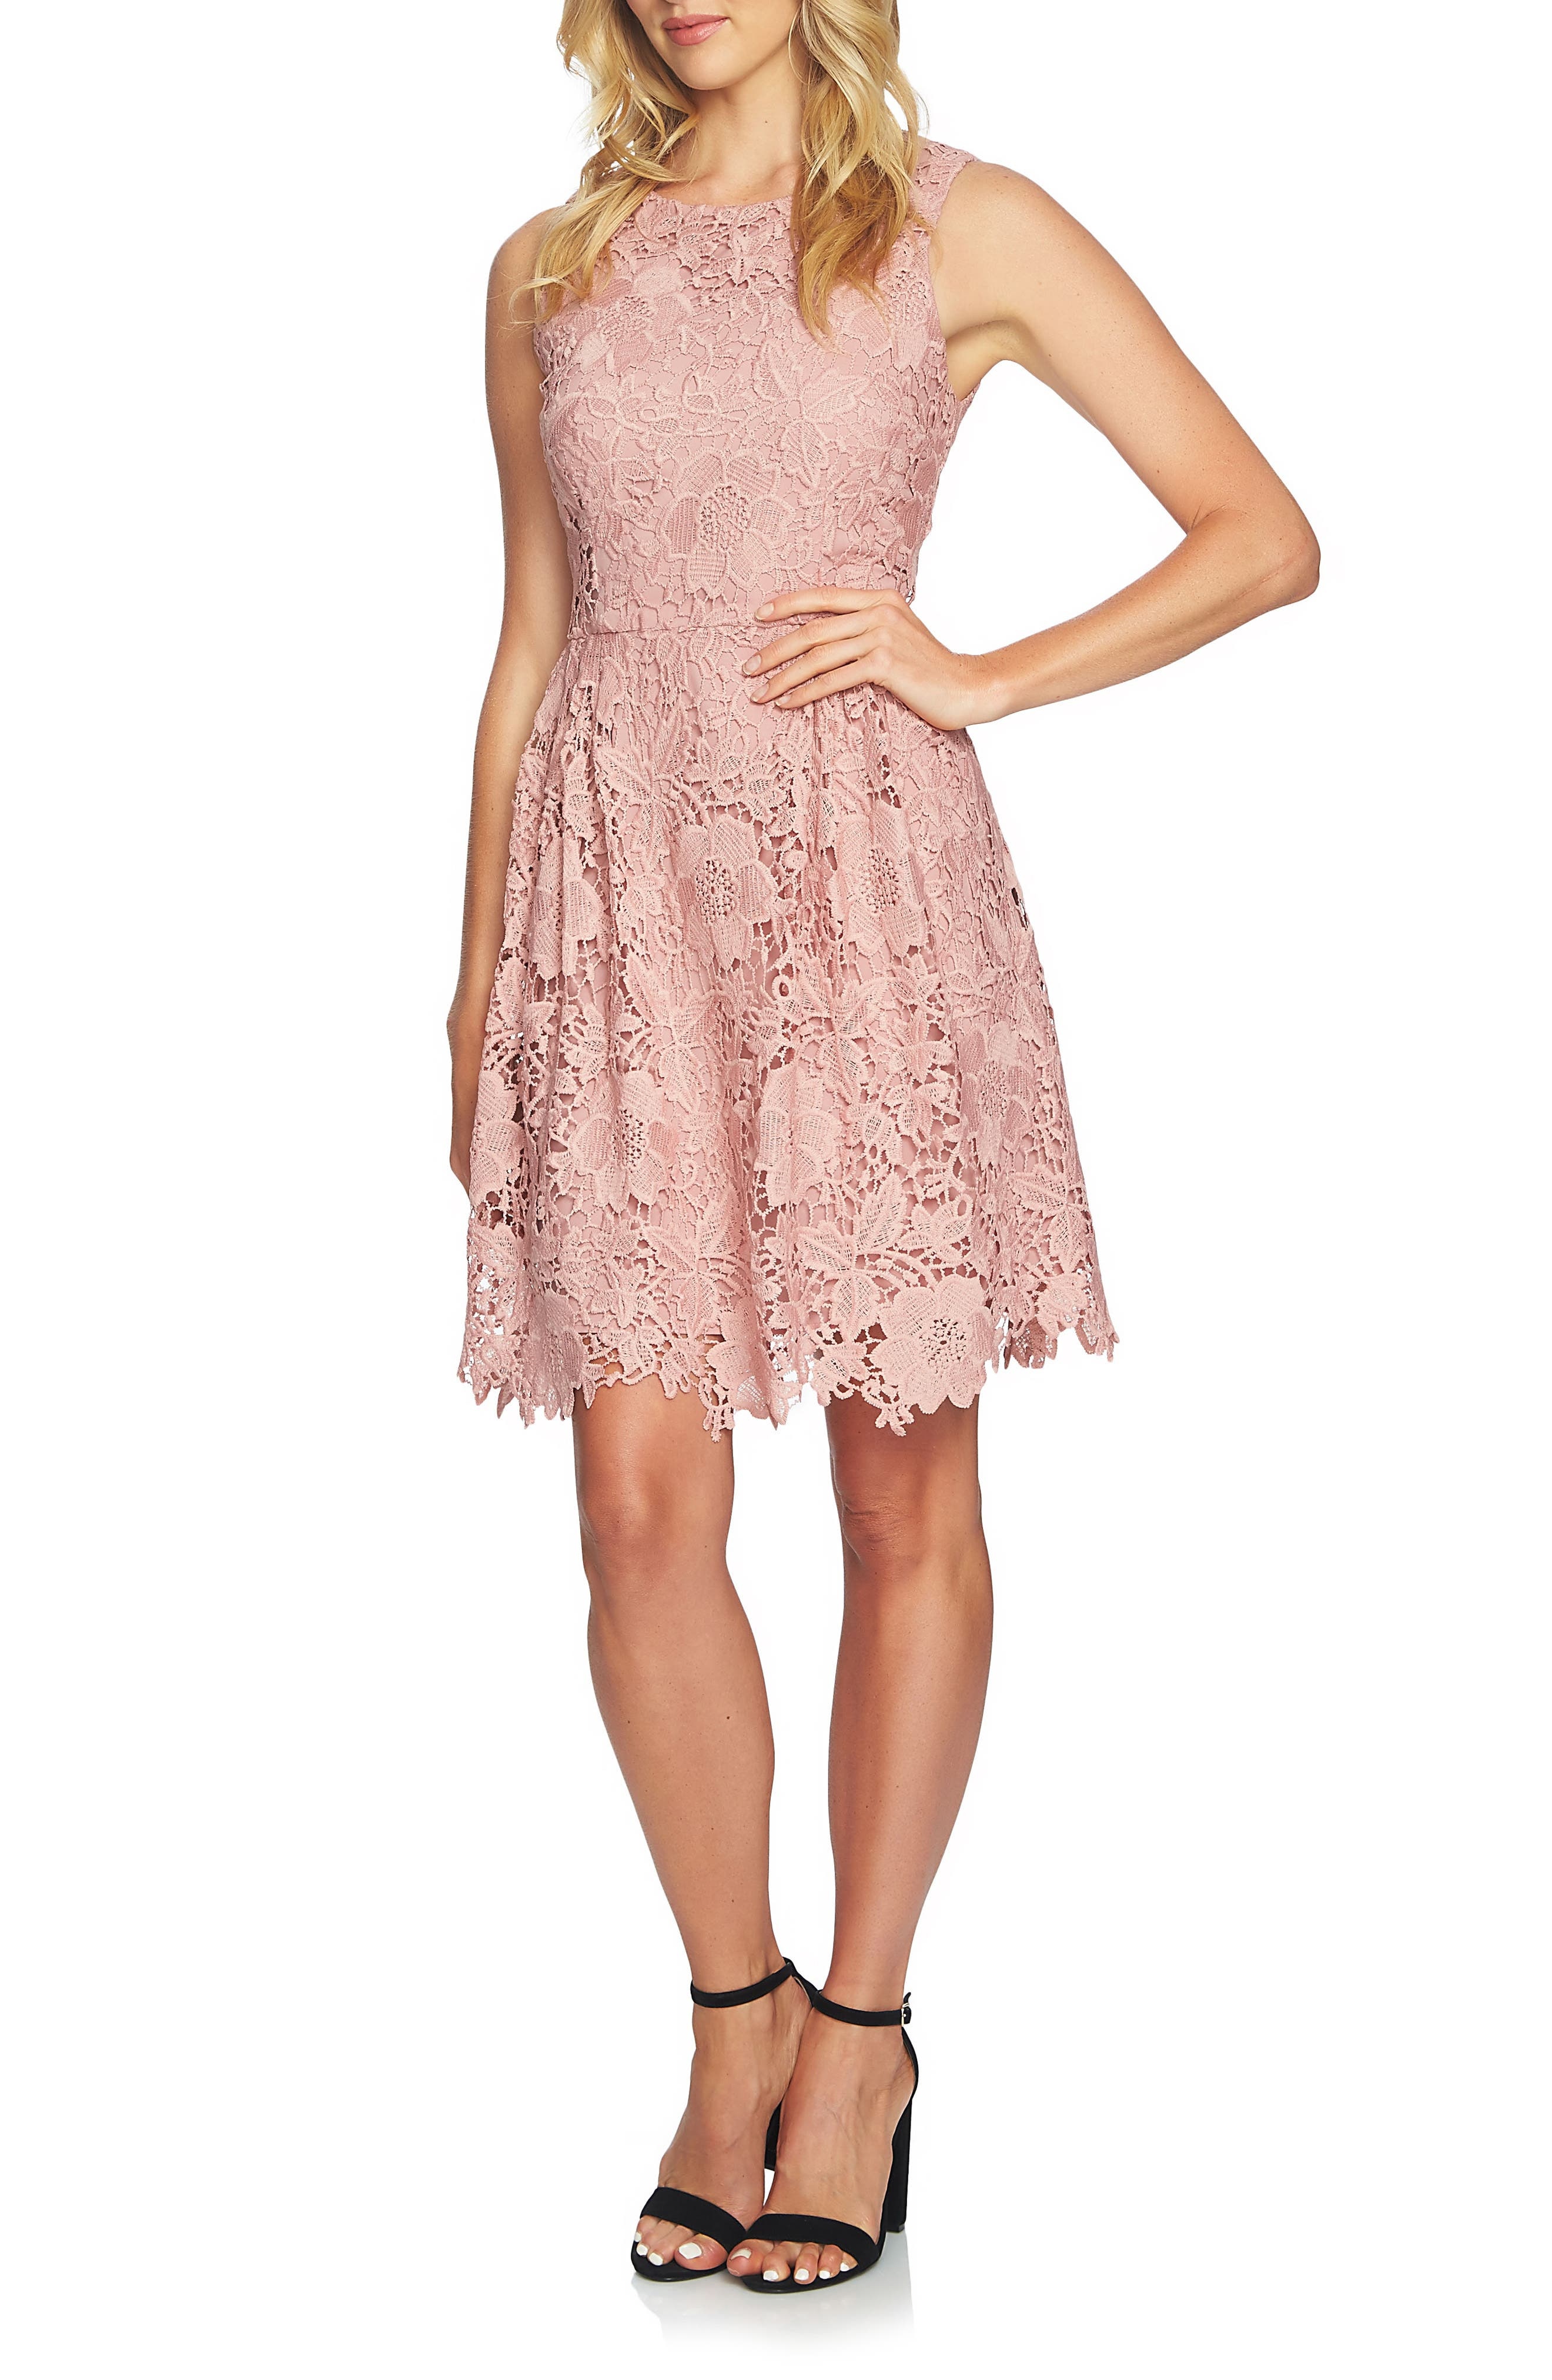 Alternate Image 1 Selected - CeCe Claiborne Lace A-Line Dress